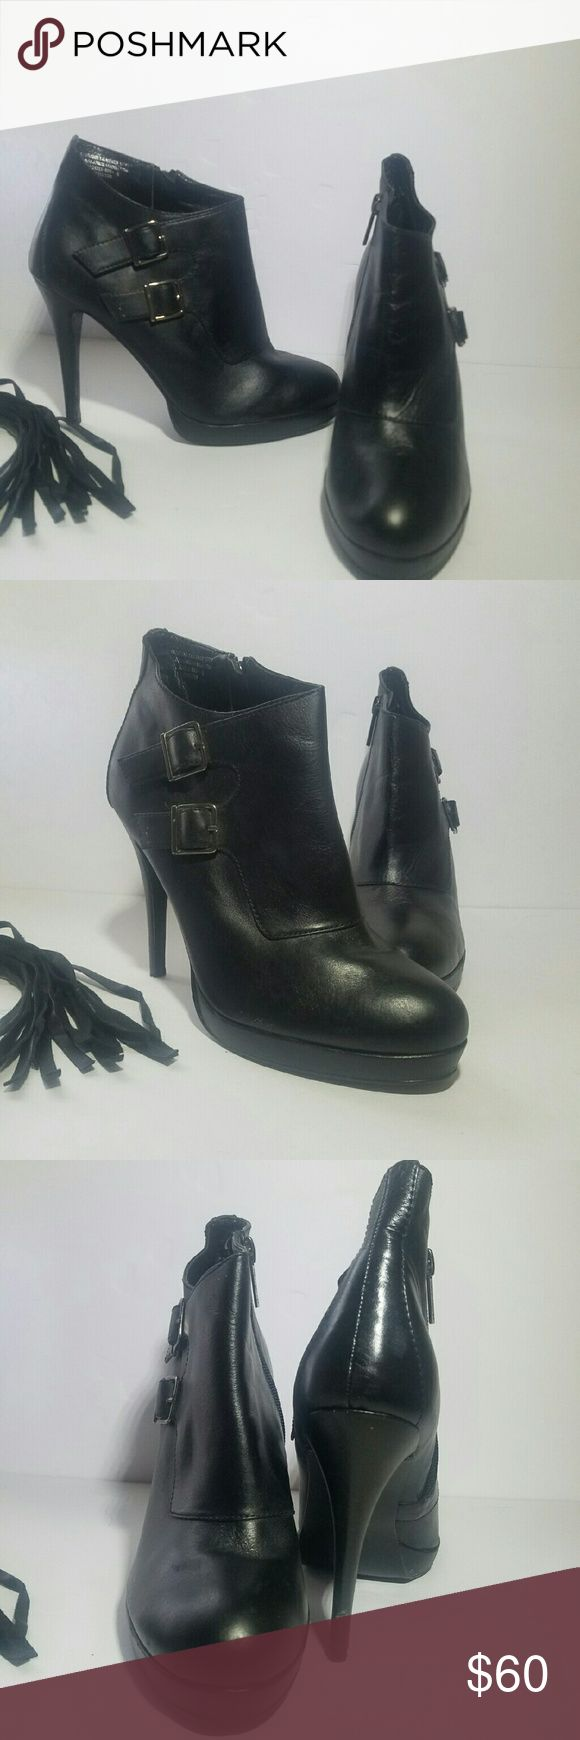 "Colin Stuart Bootie Embrace your inner rebel with this stylish Bootie featuring Side Buckles Leather upper  Approximately 4"" heel with 1/2"" platform  EUC Colin Stuart Shoes"